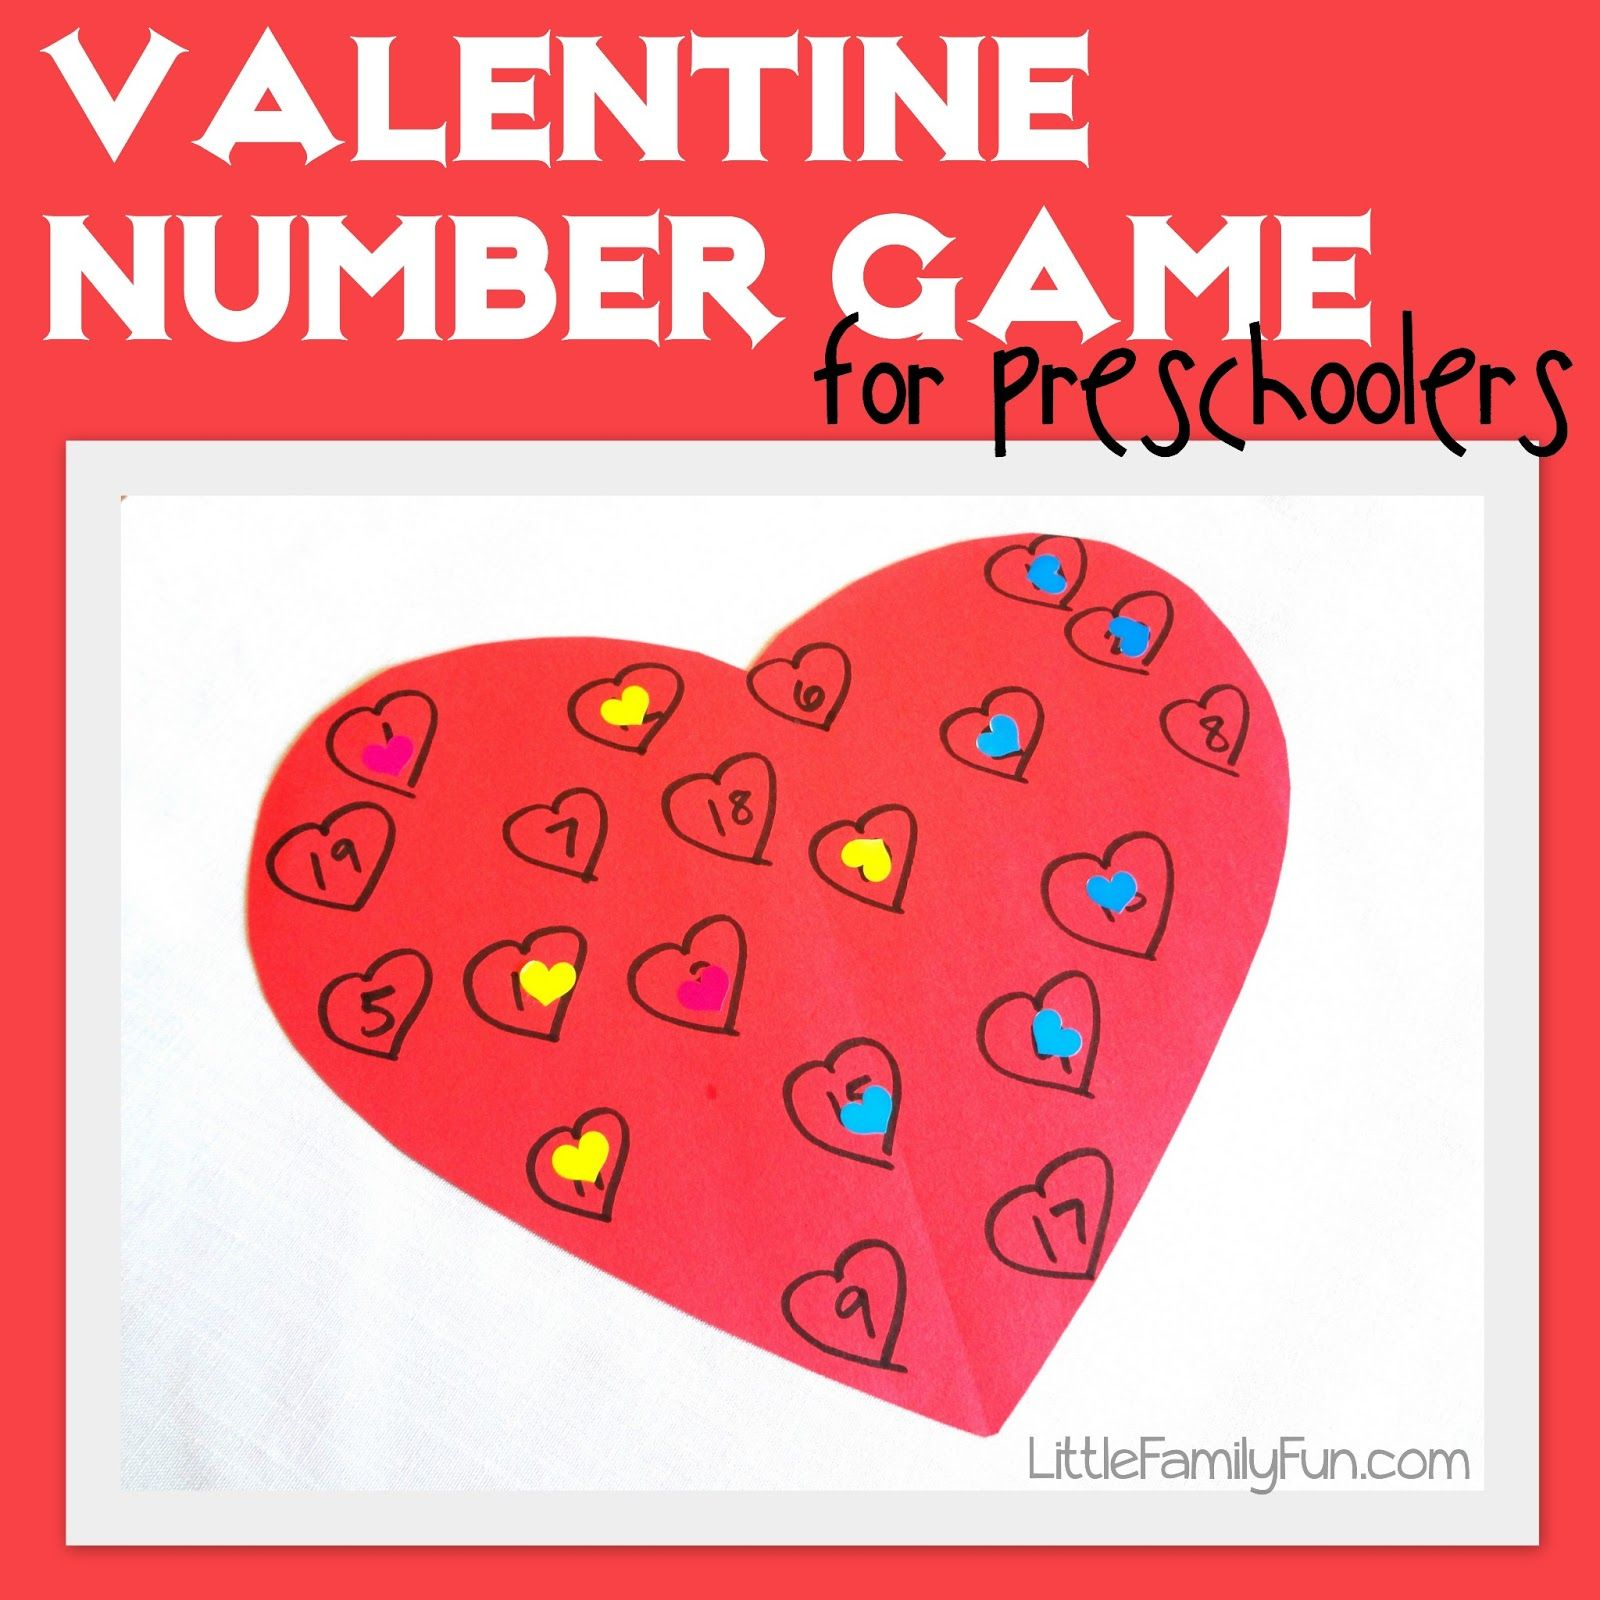 Cut A Heart Shape Out Of Construction Paper Draw 20 Hearts On It And Write The Numbers 1 20 In